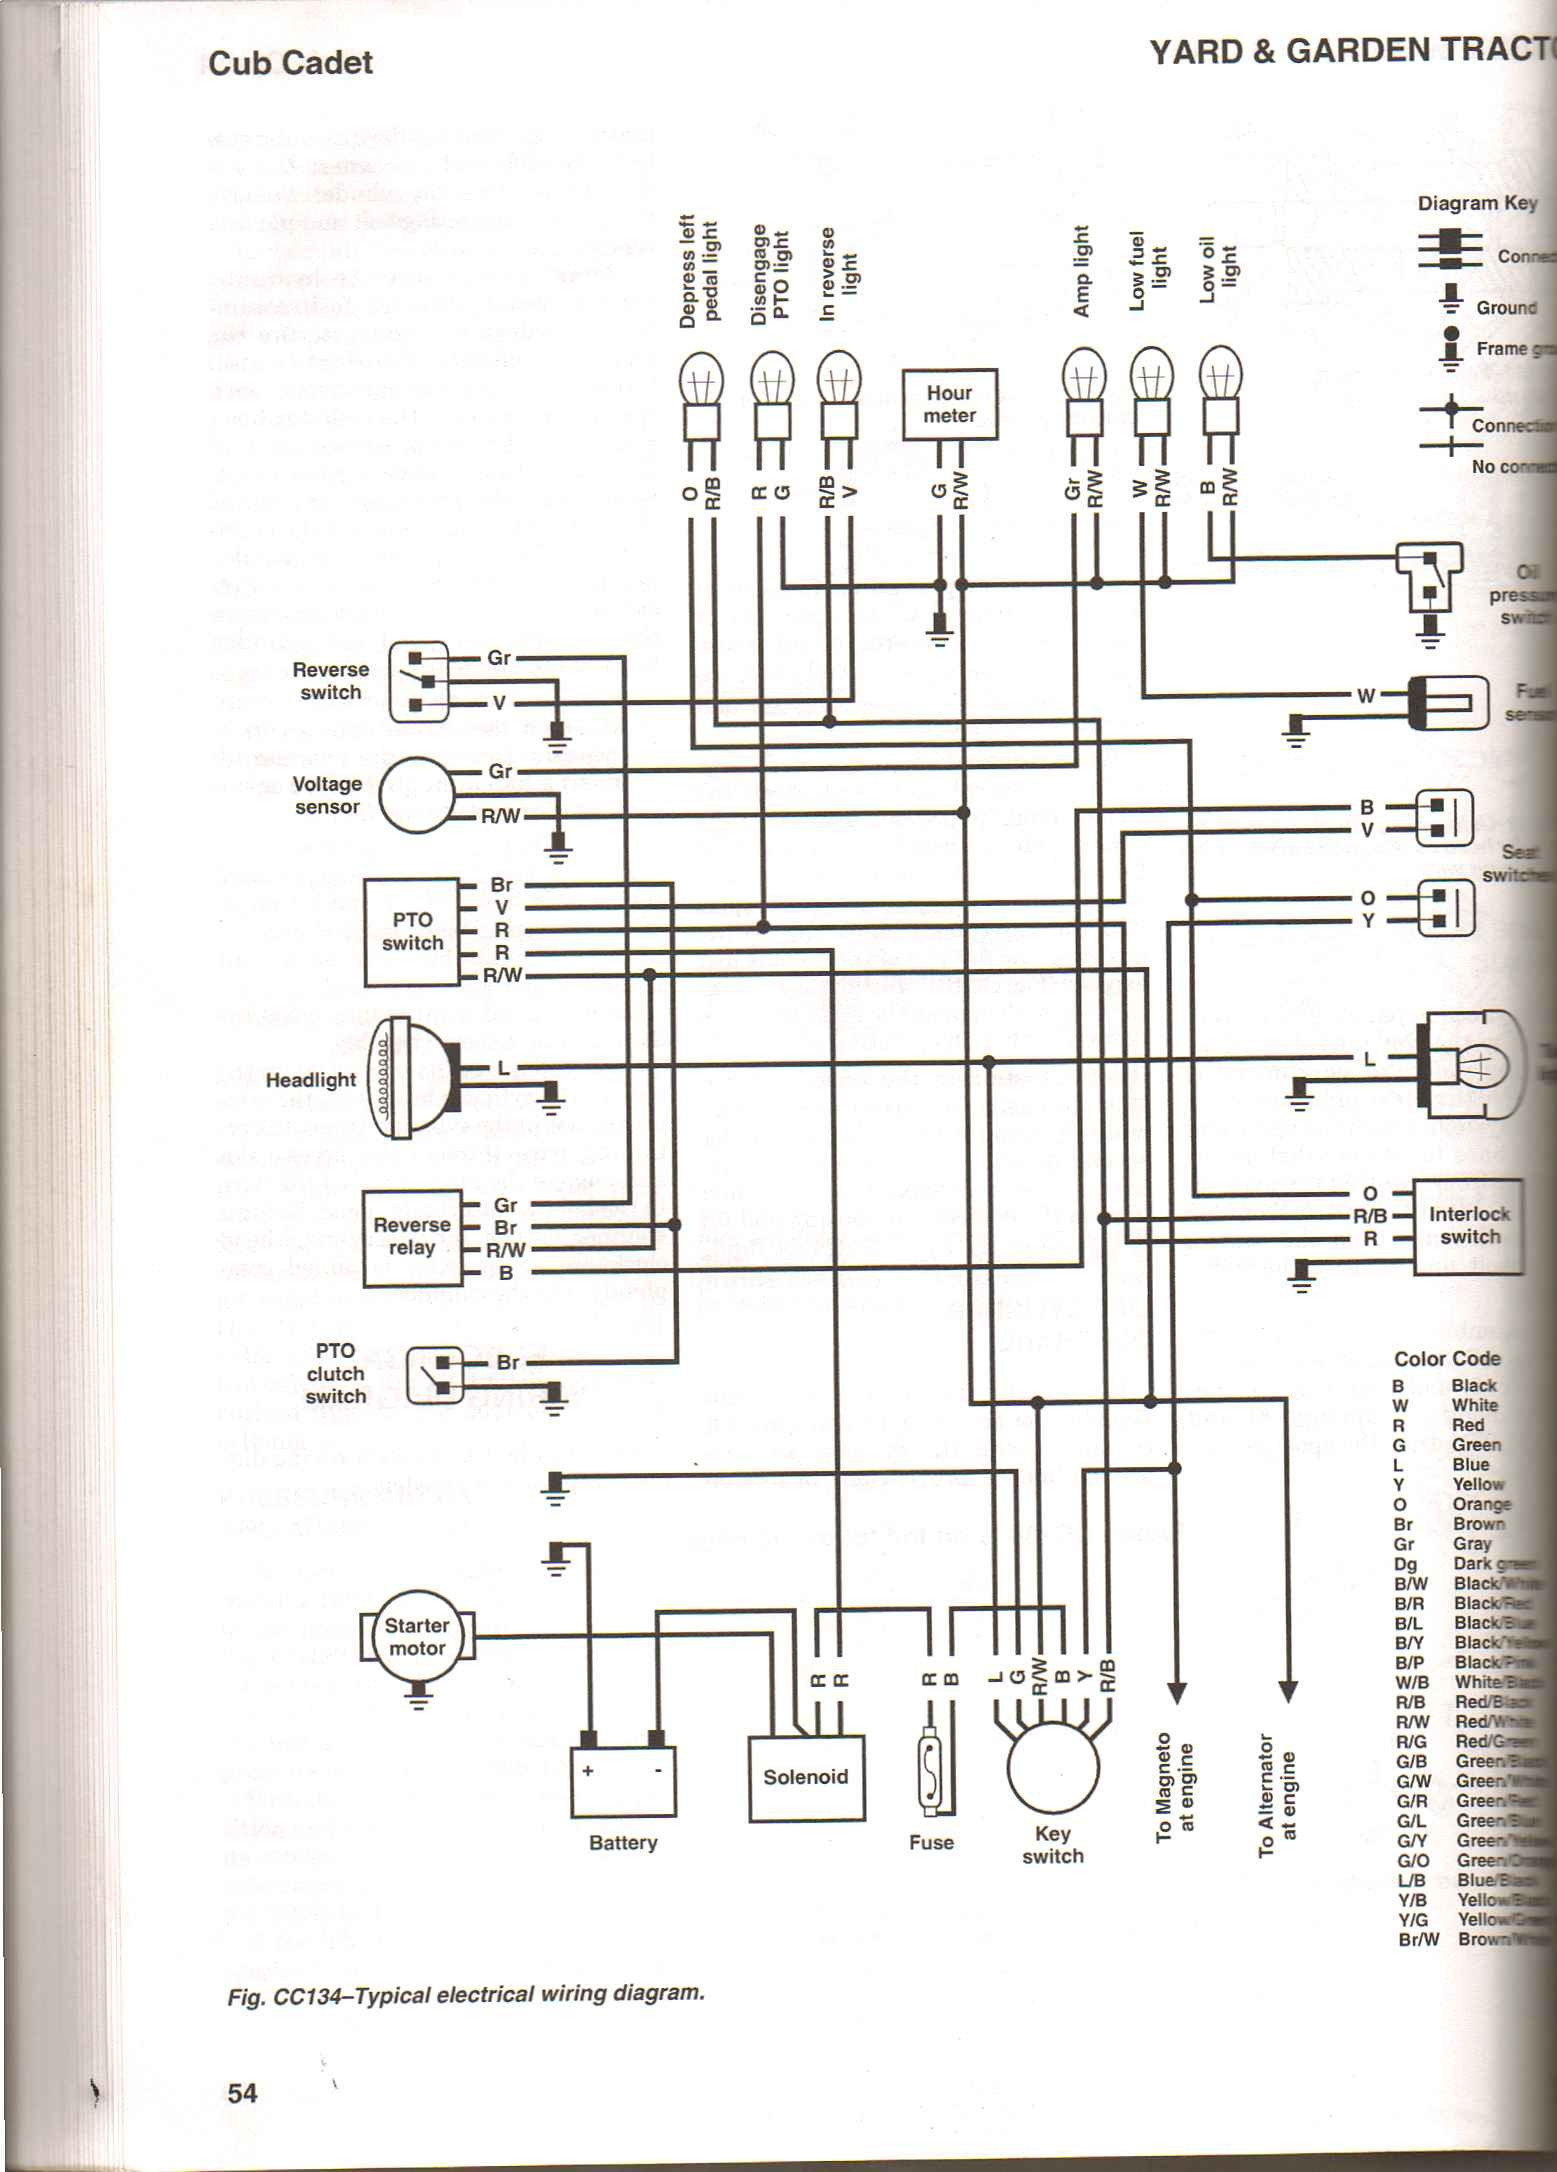 [SCHEMATICS_49CH]  1863 Cub Tractor Wiring Diagram - 07 Ford Taurus Engine Diagram for Wiring  Diagram Schematics | Cub Tractor Wiring Diagrams |  | Wiring Diagram Schematics